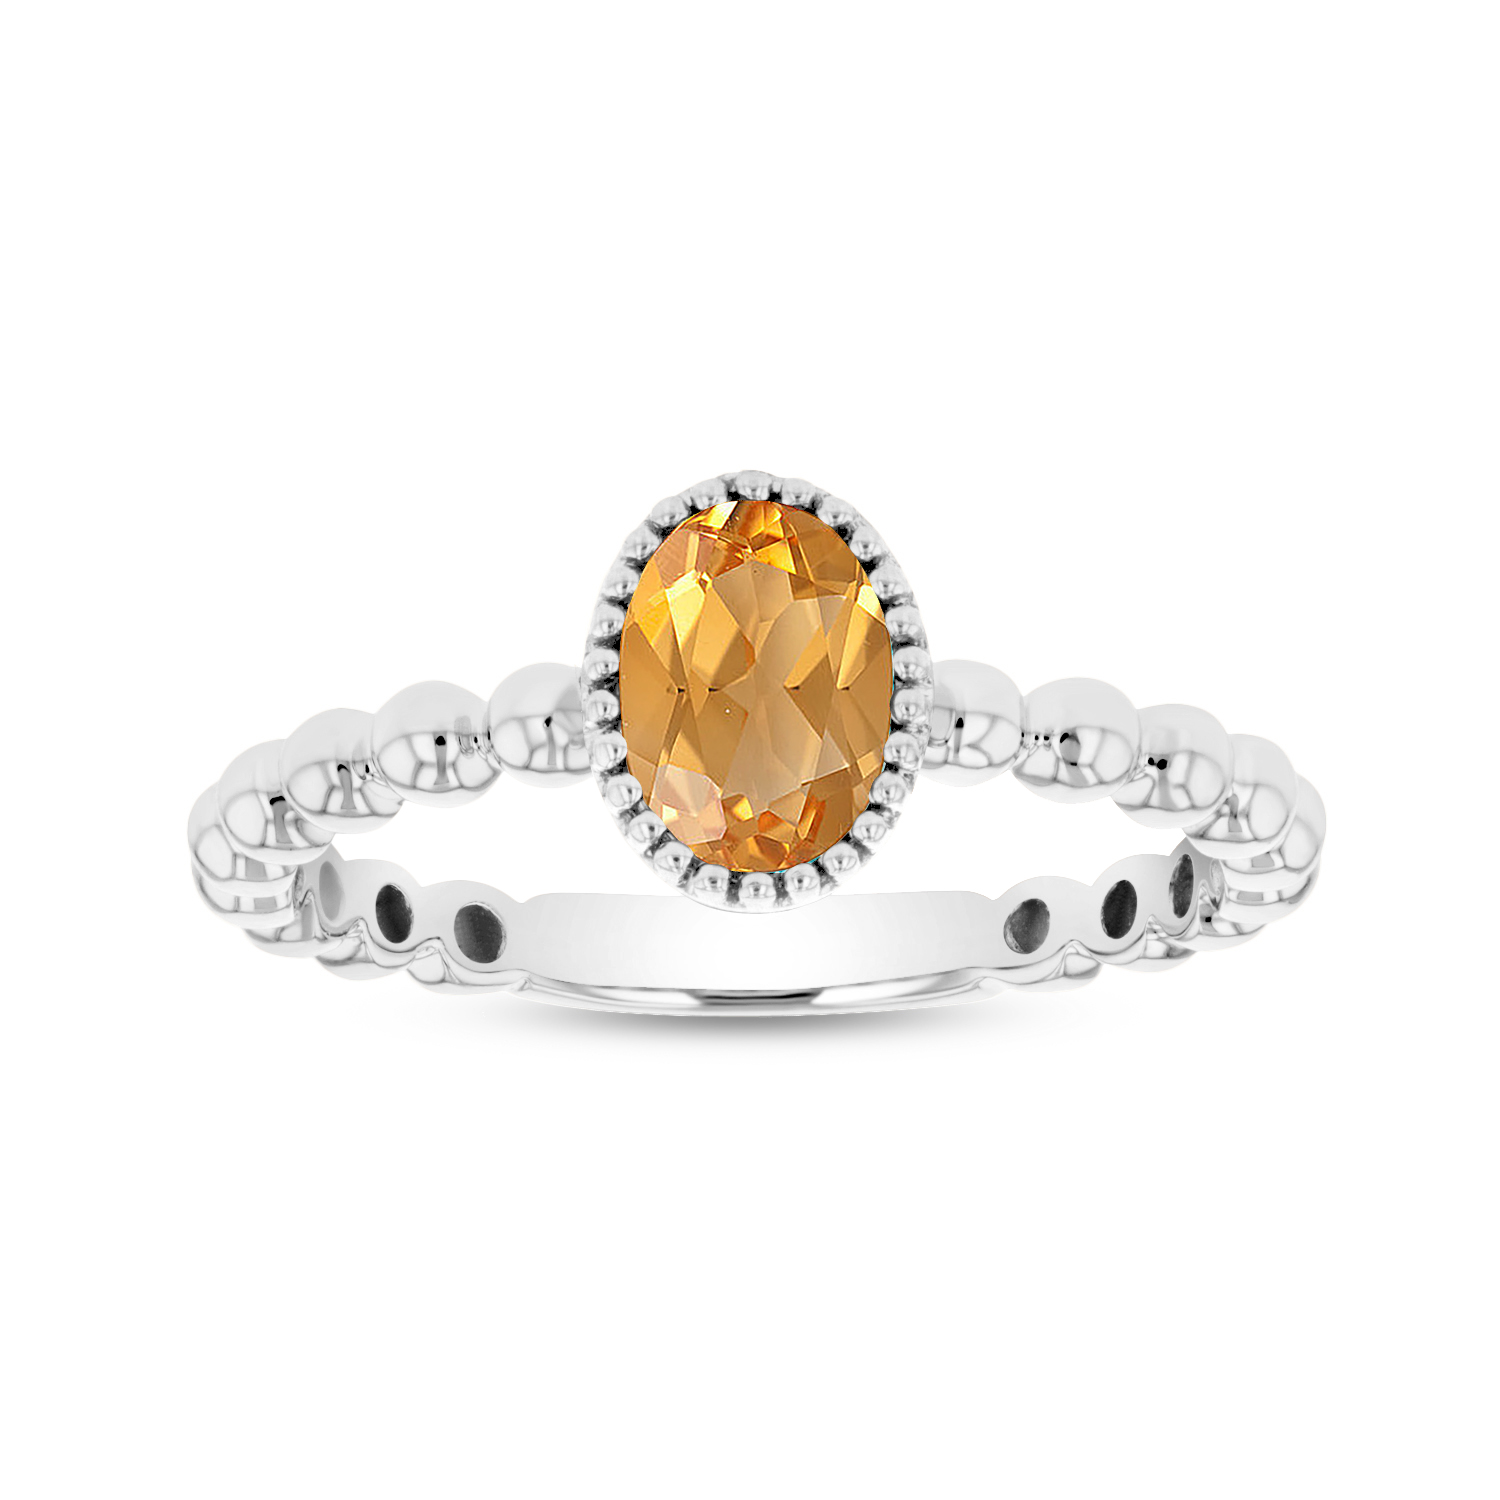 View 7x5mm Oval Citrine Ring in 14k Gold